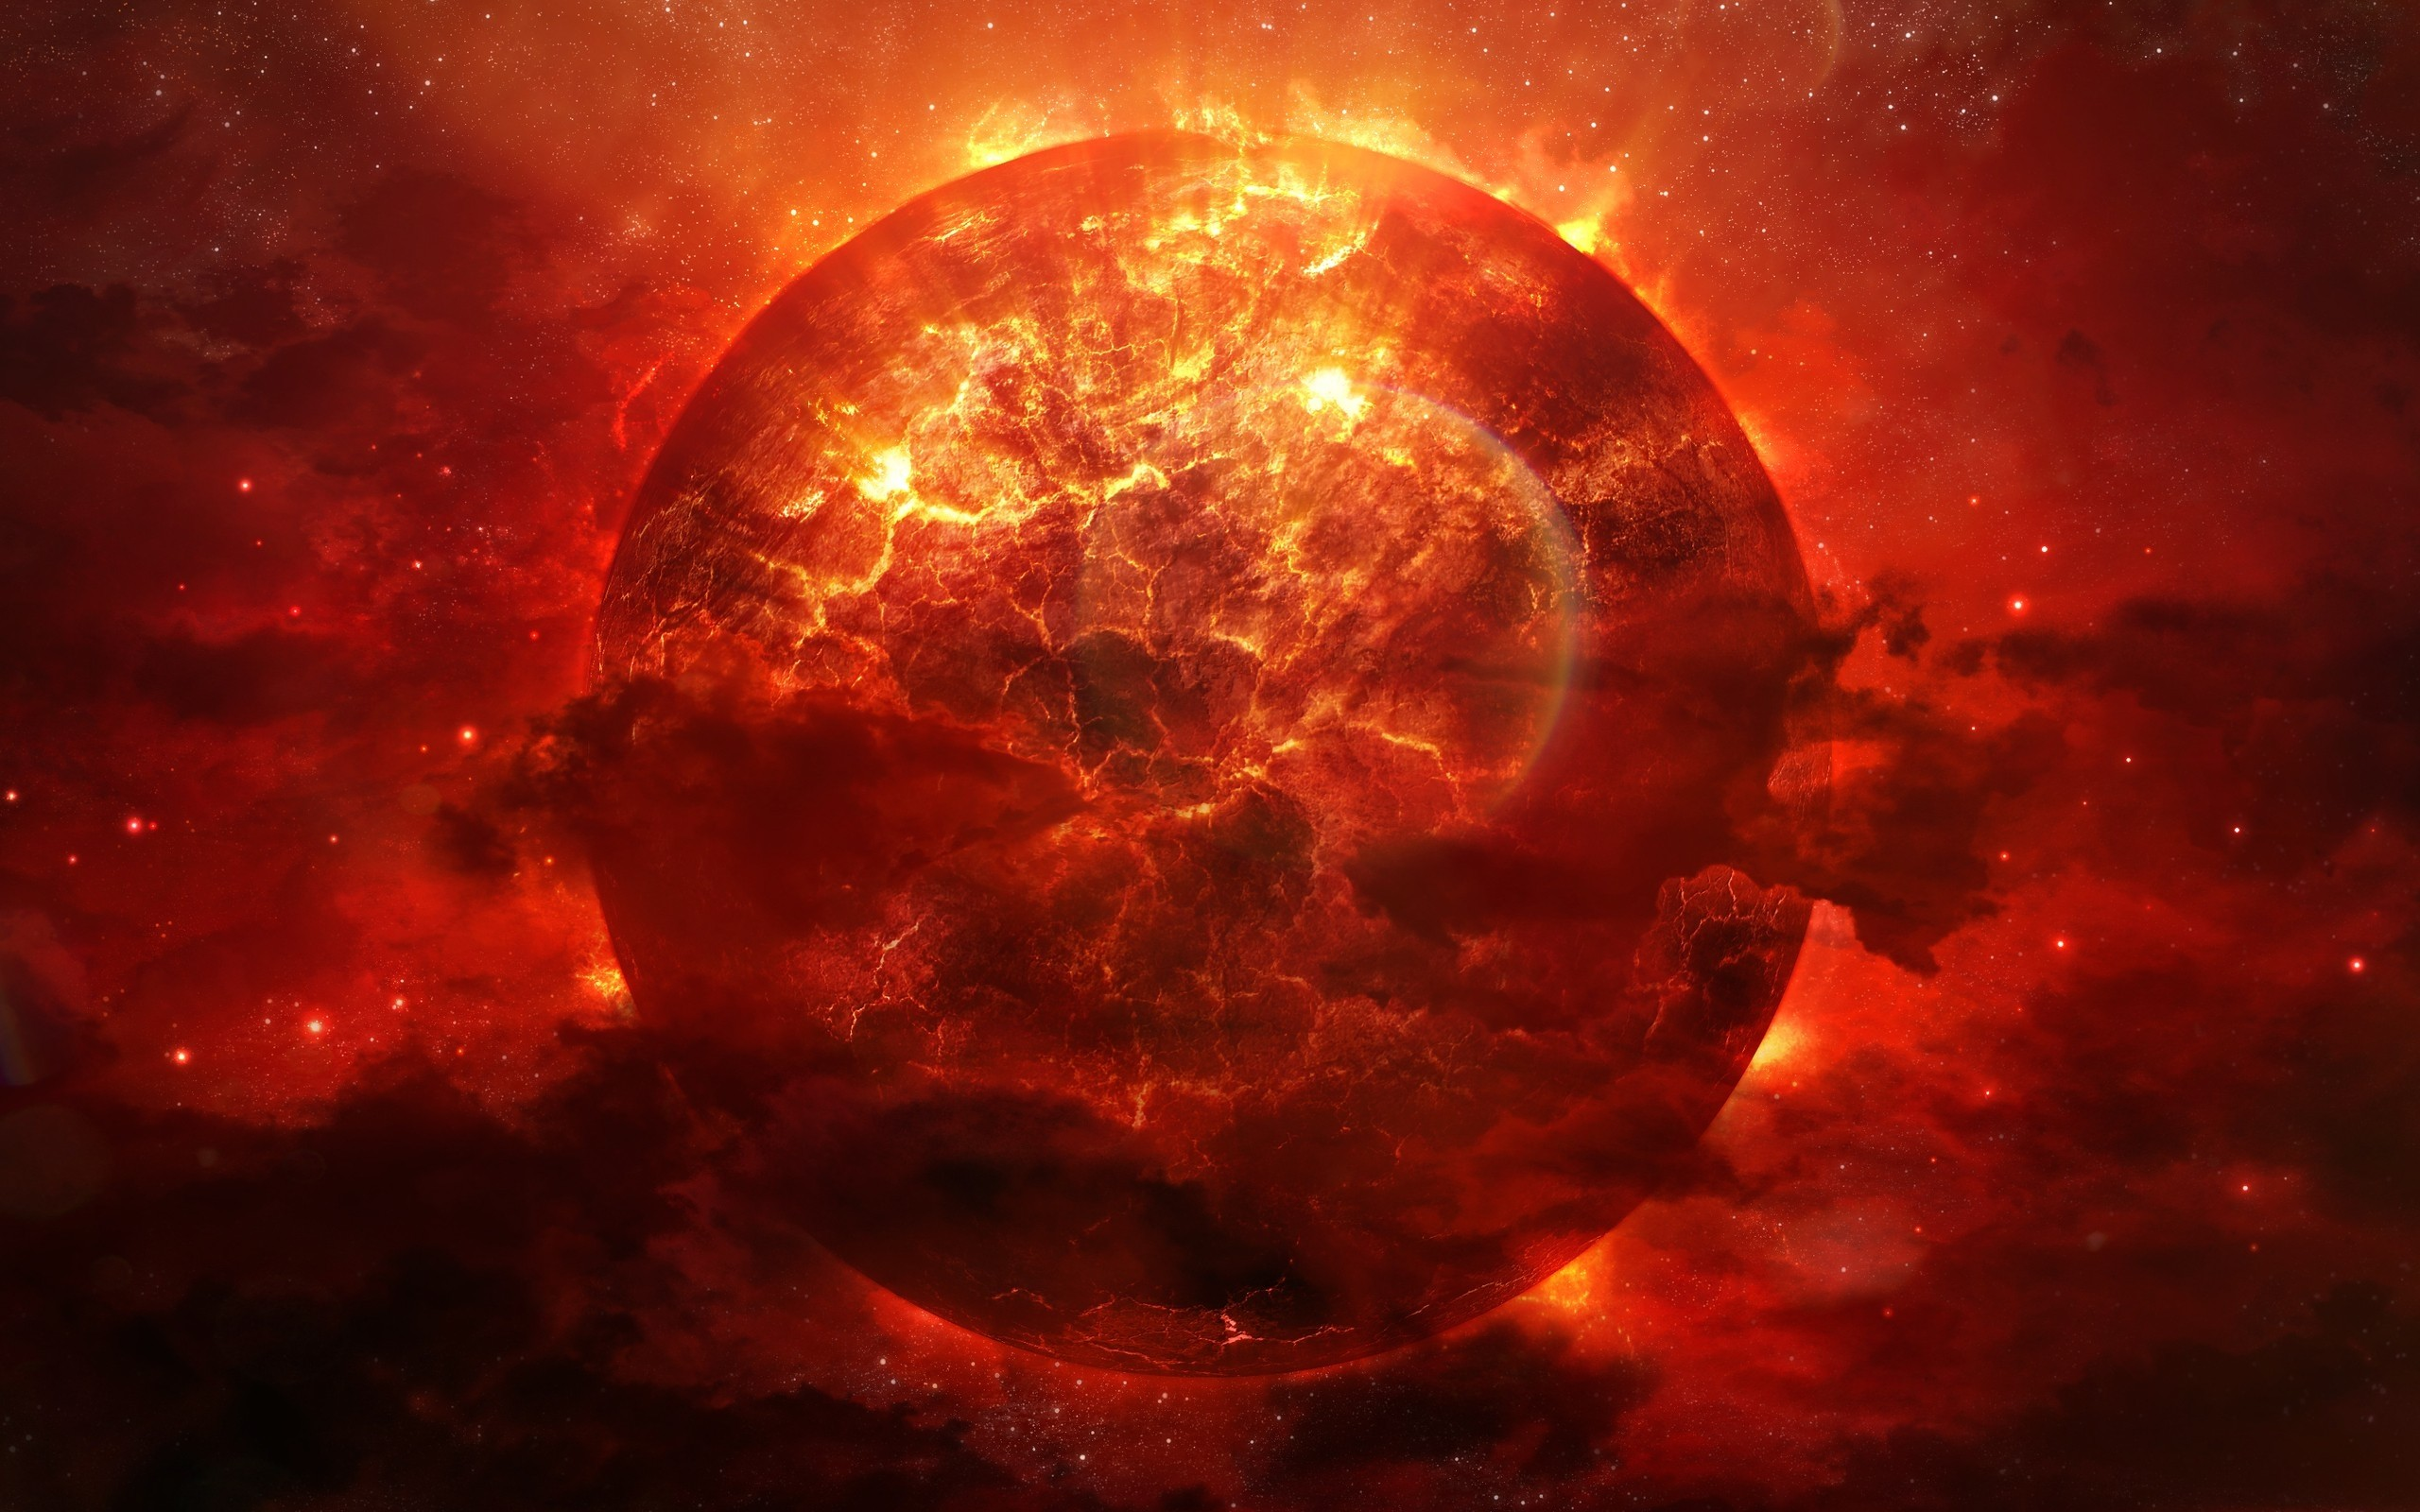 Download cool Wallpaper of the sun HD – Free cool Wallpaper of the sun  Download Download